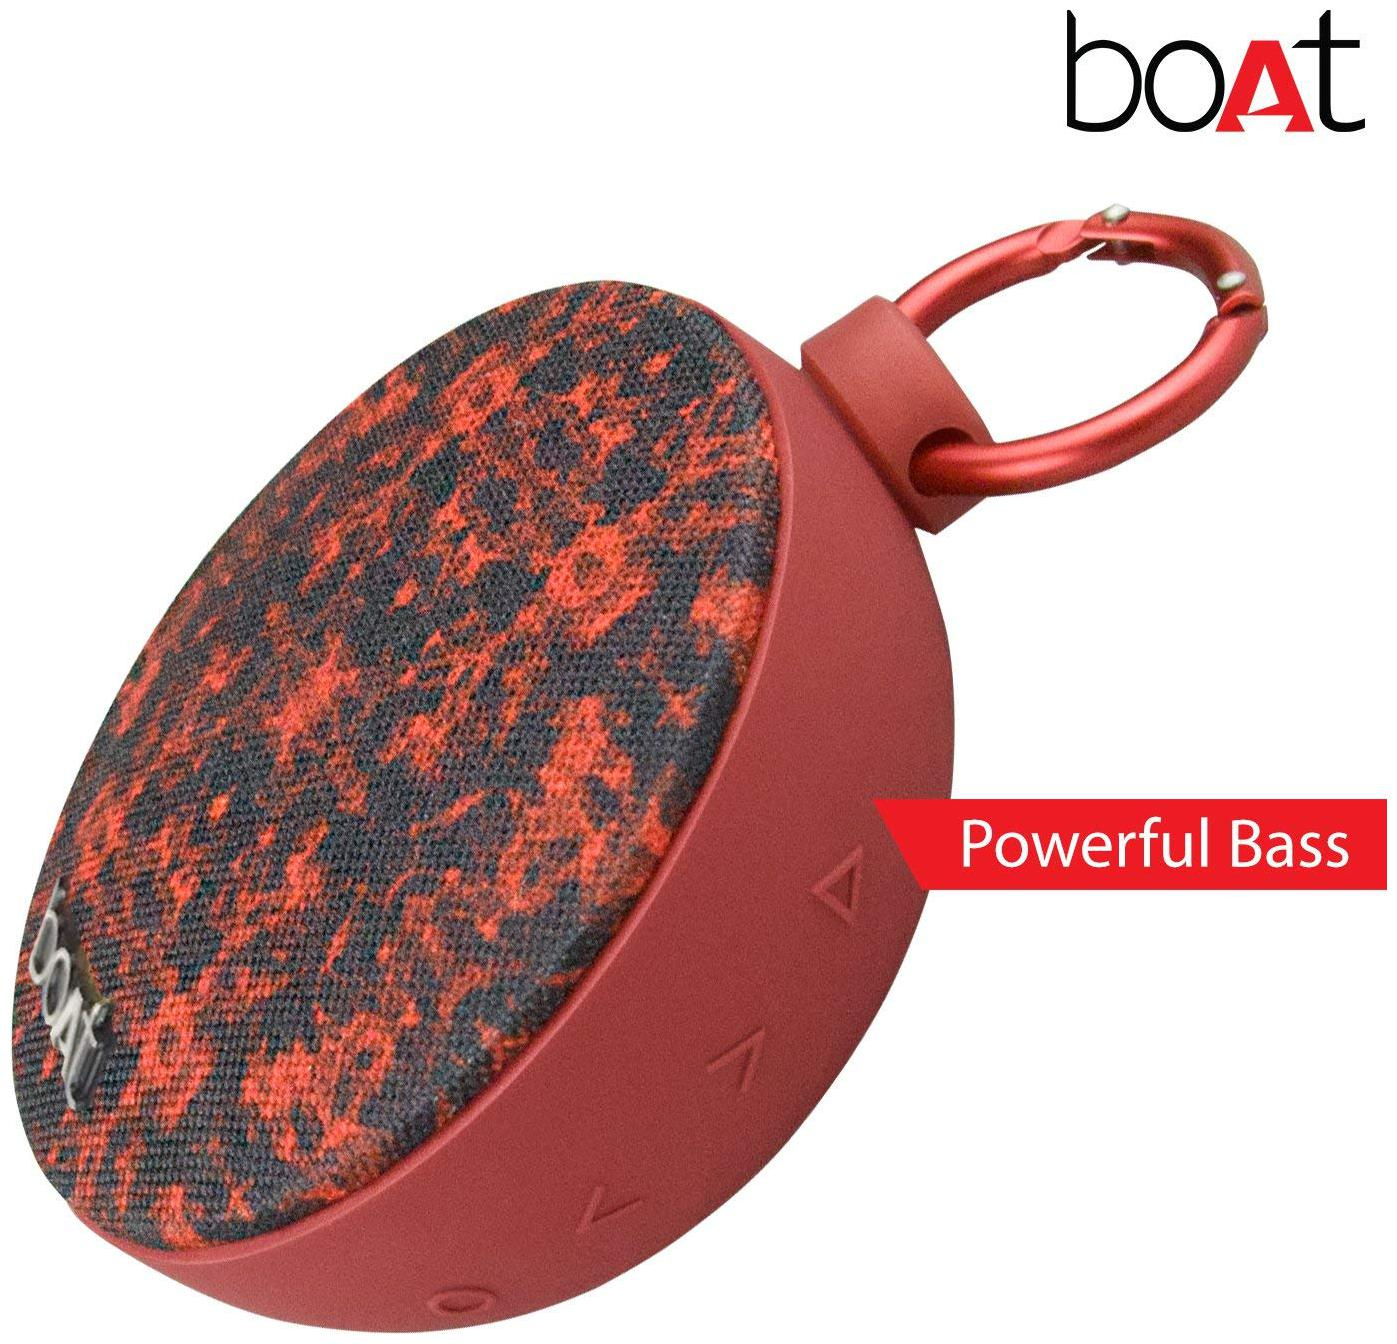 https://assetscdn1.paytm.com/images/catalog/product/C/CO/COMBOAT-STONE-2DHOO1700879A0F826F/1562674304158_0..jpg